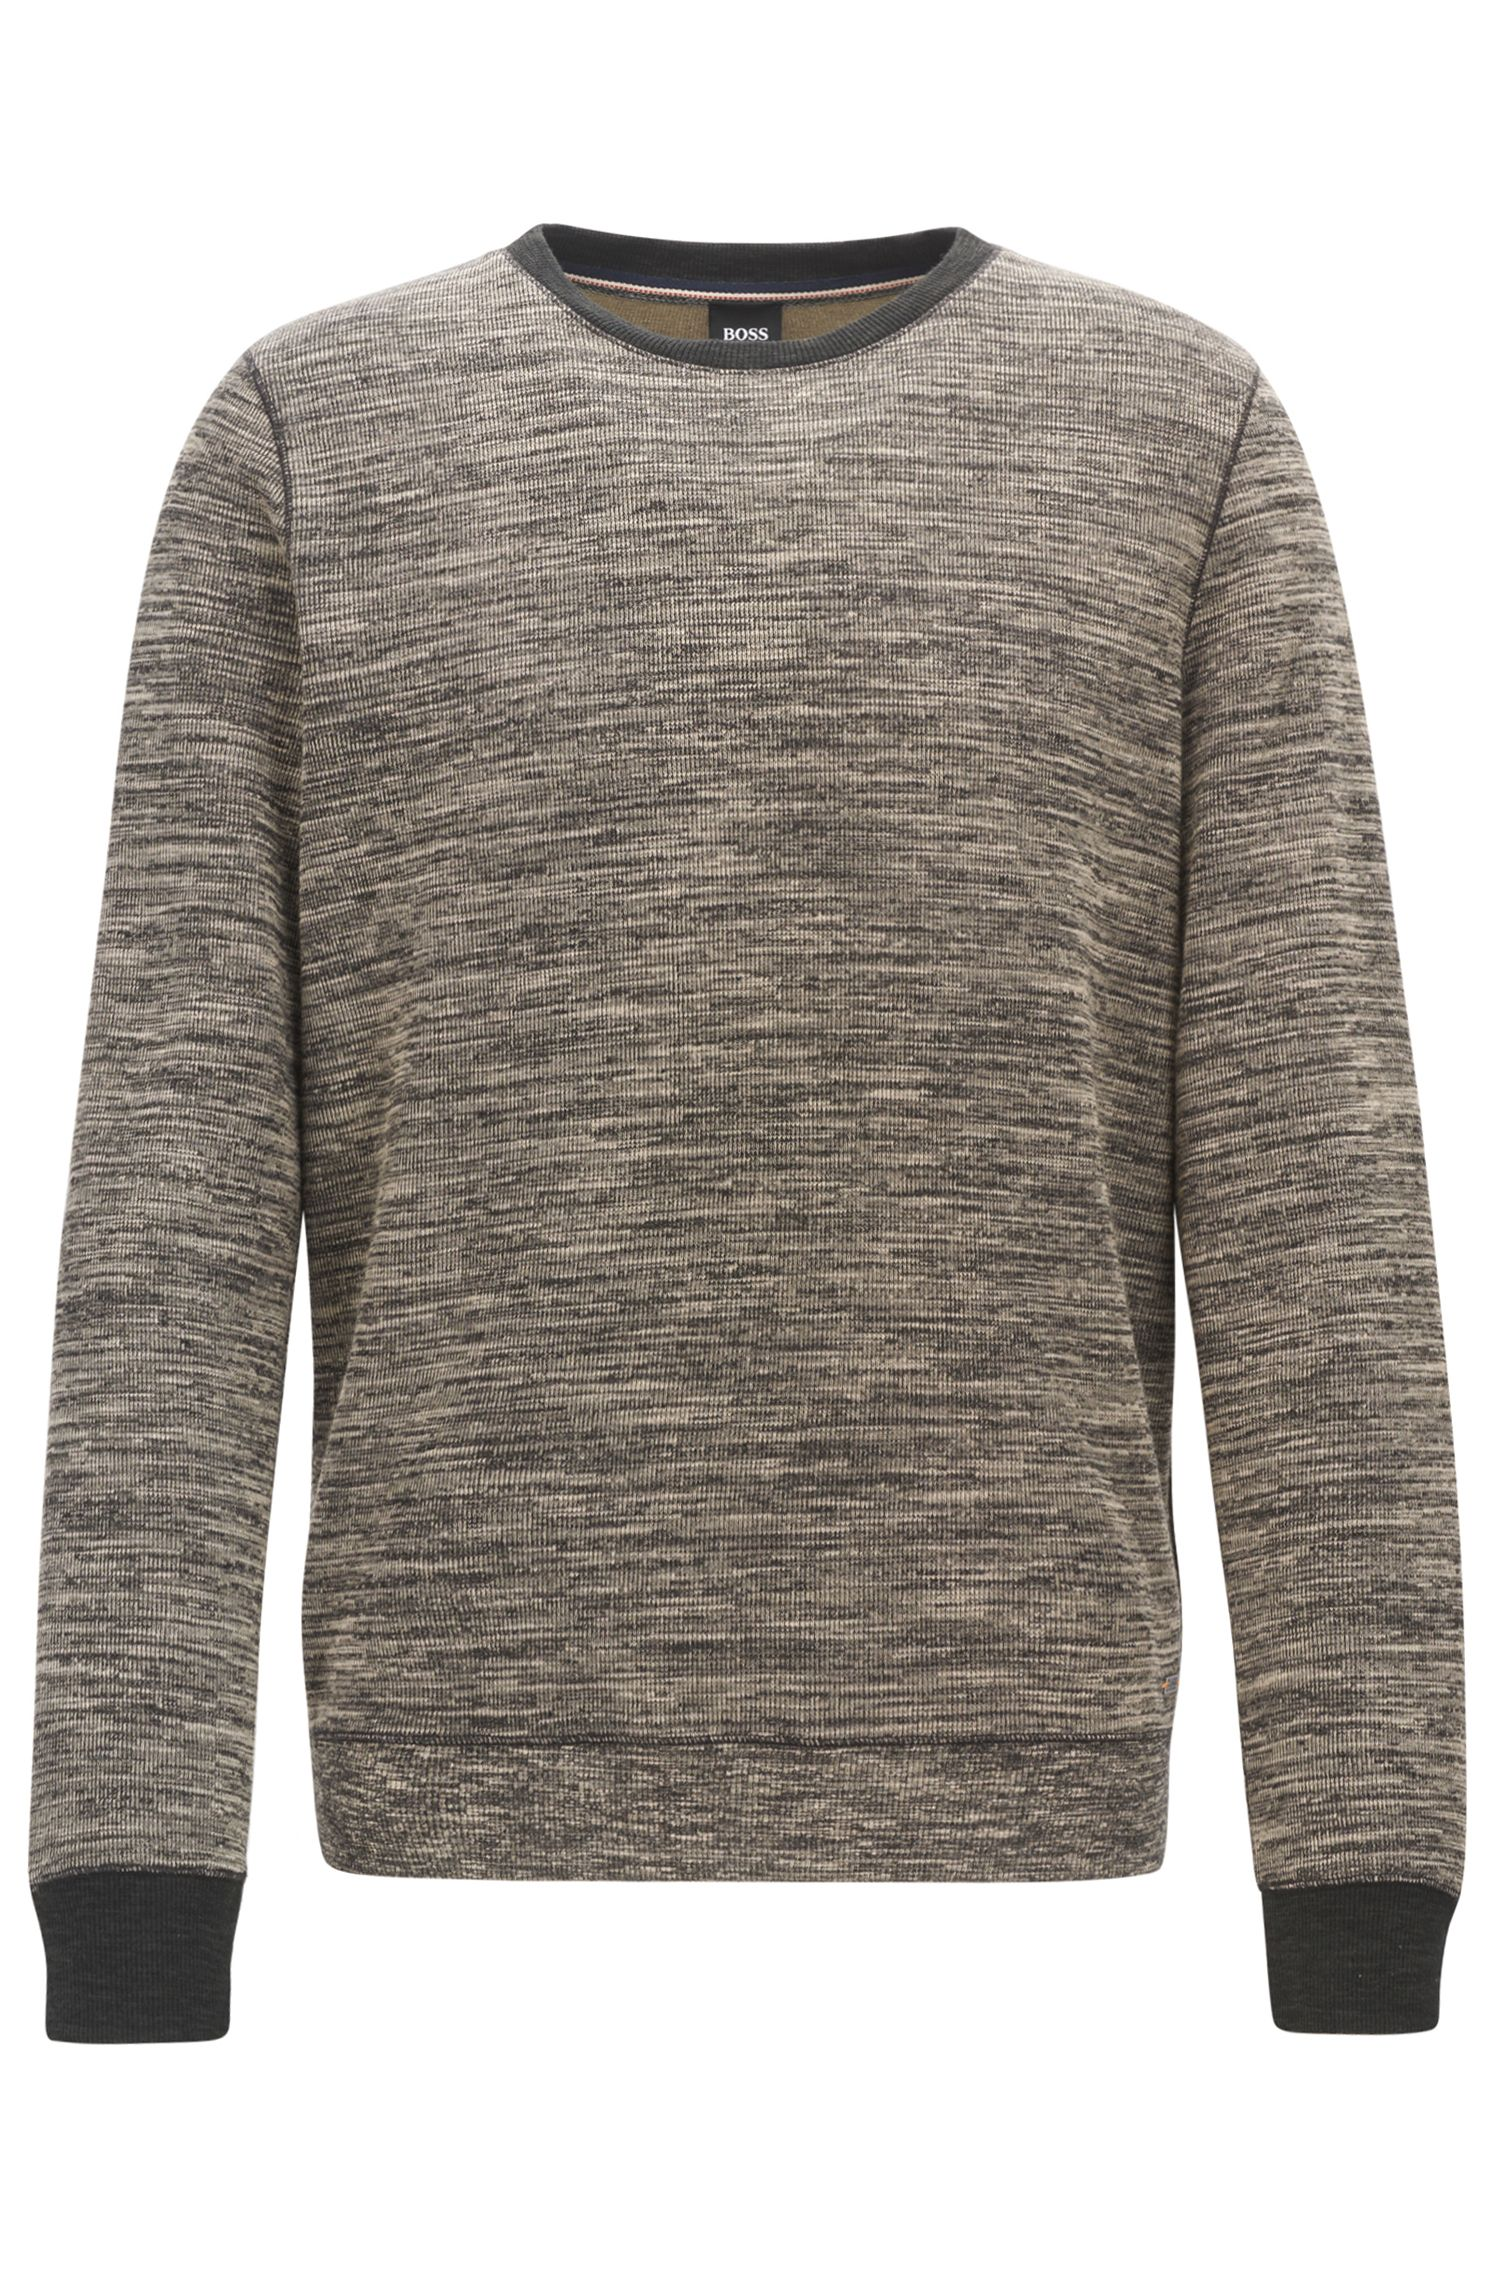 Cotton-blend sweater with mélange texture